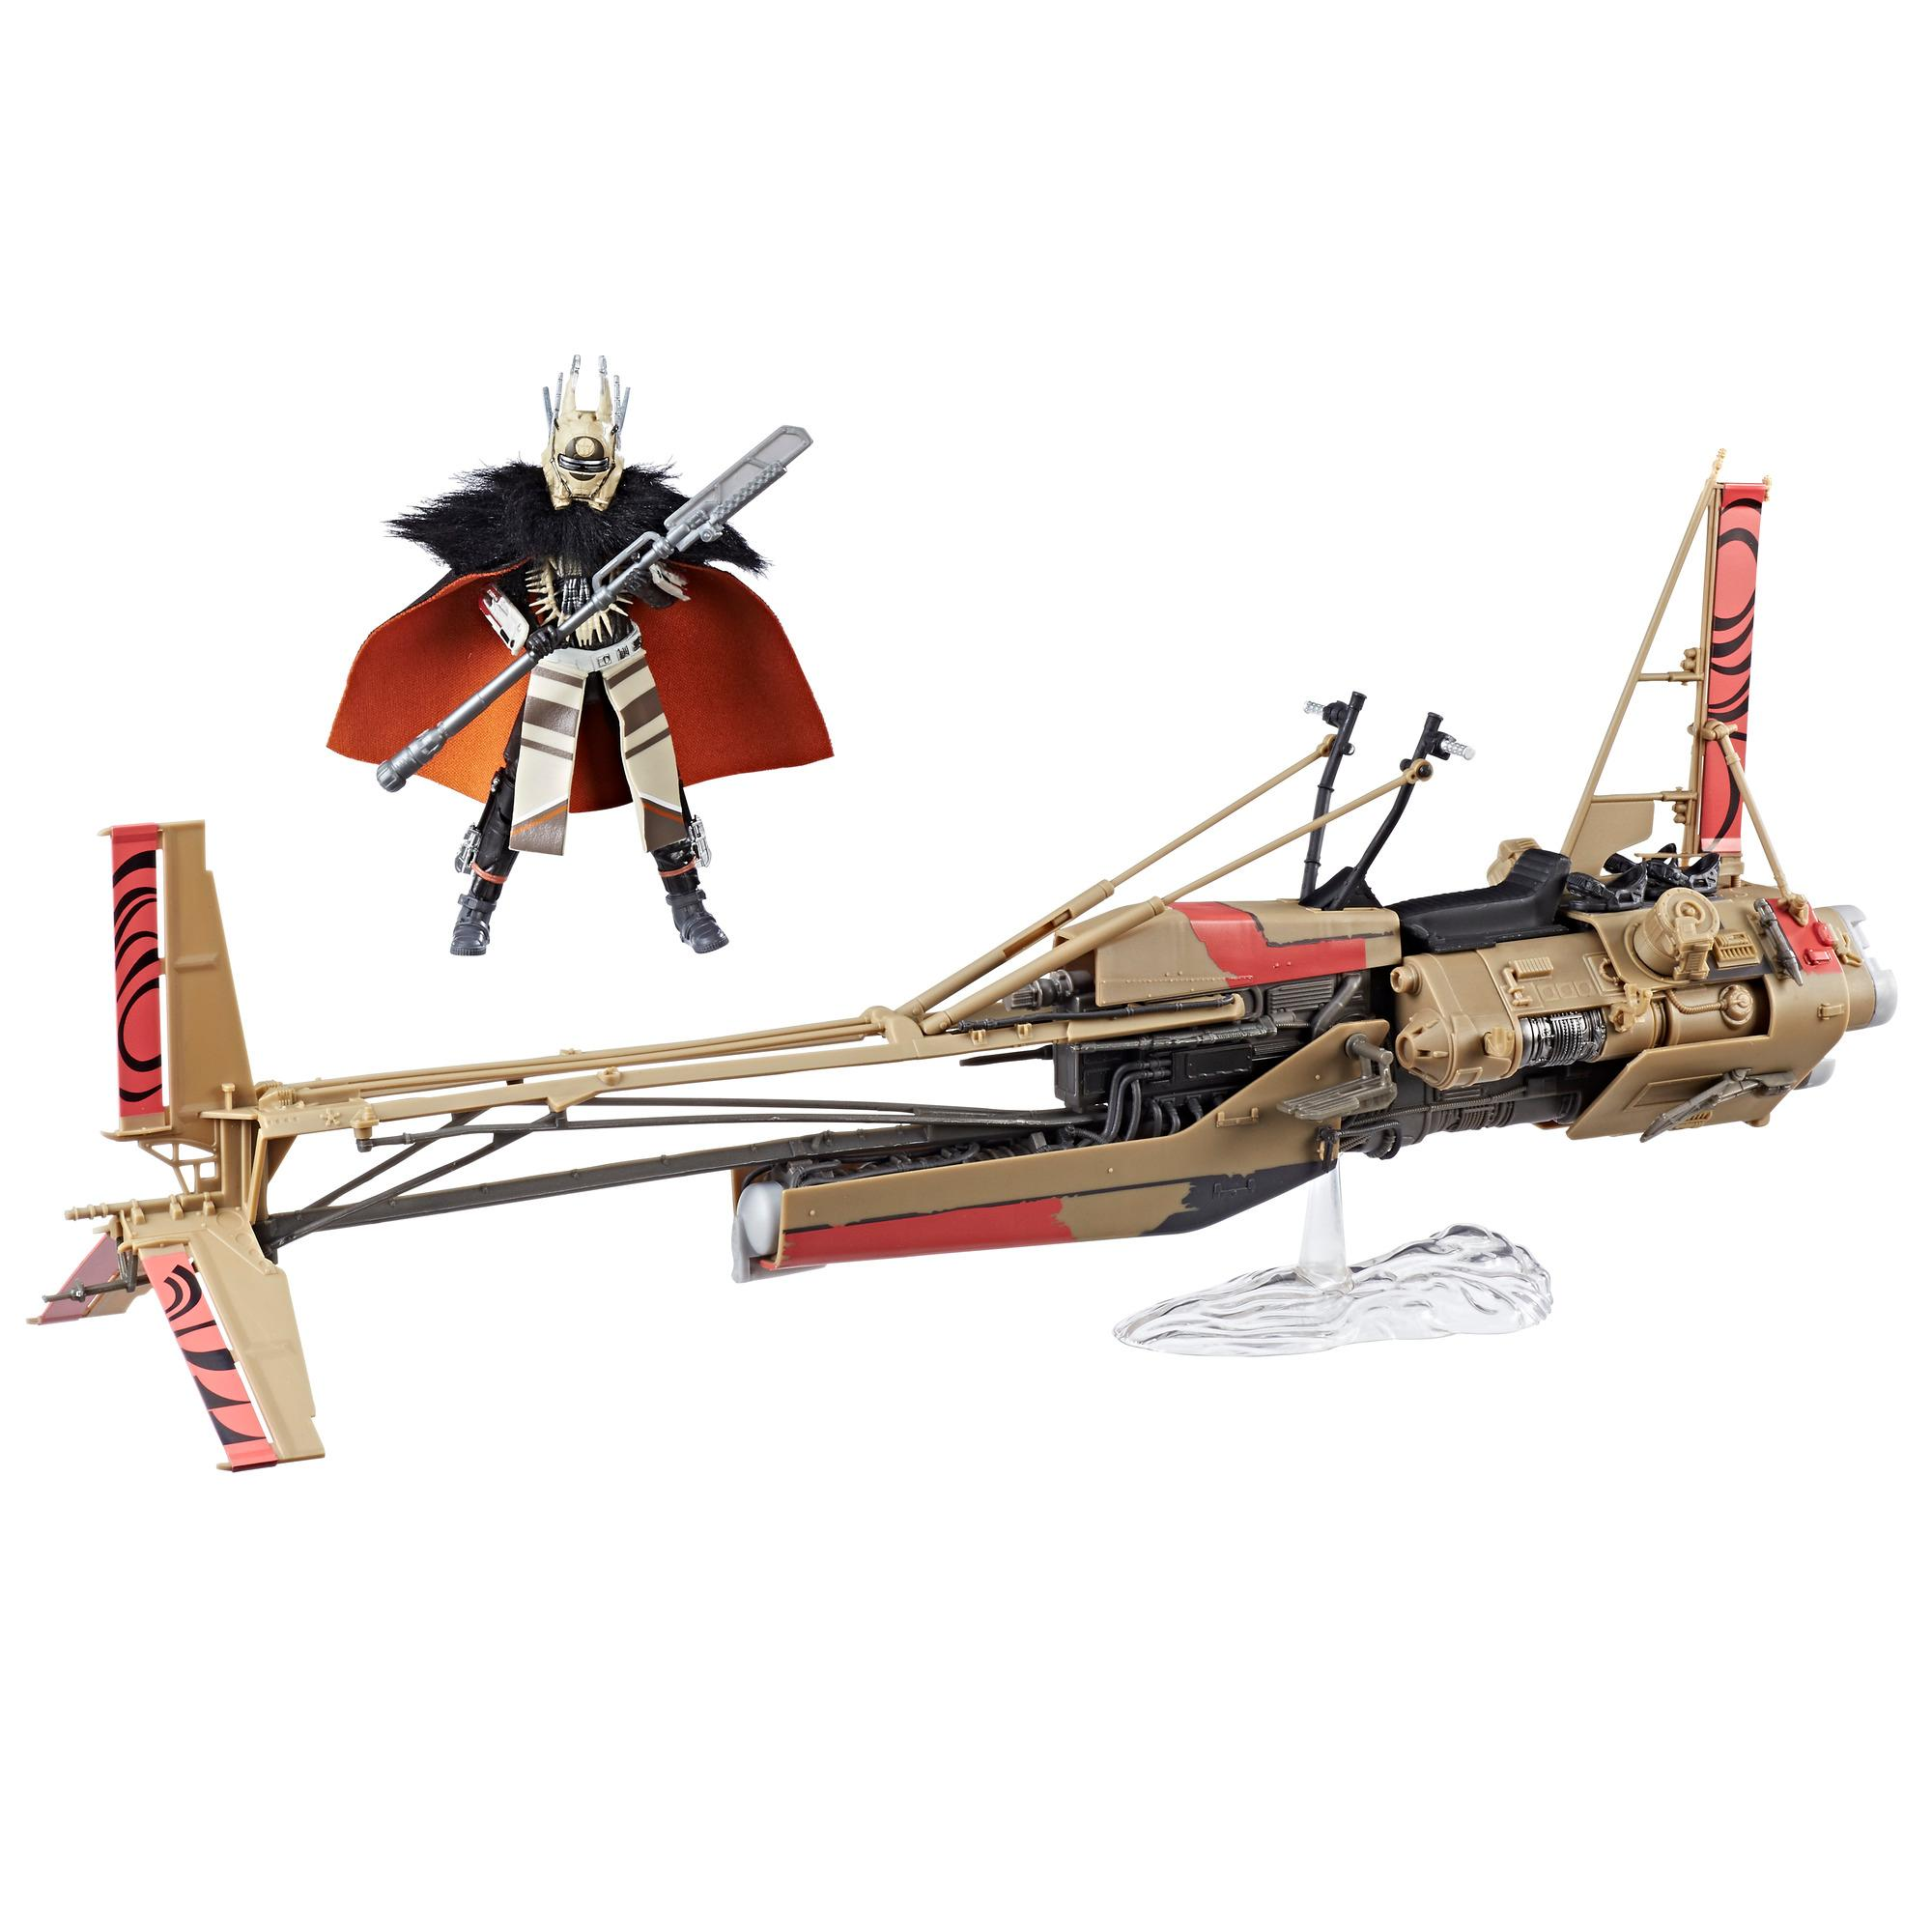 Star Wars The Black Series Enfys Nest & Enfys Nest's Swoop Bike